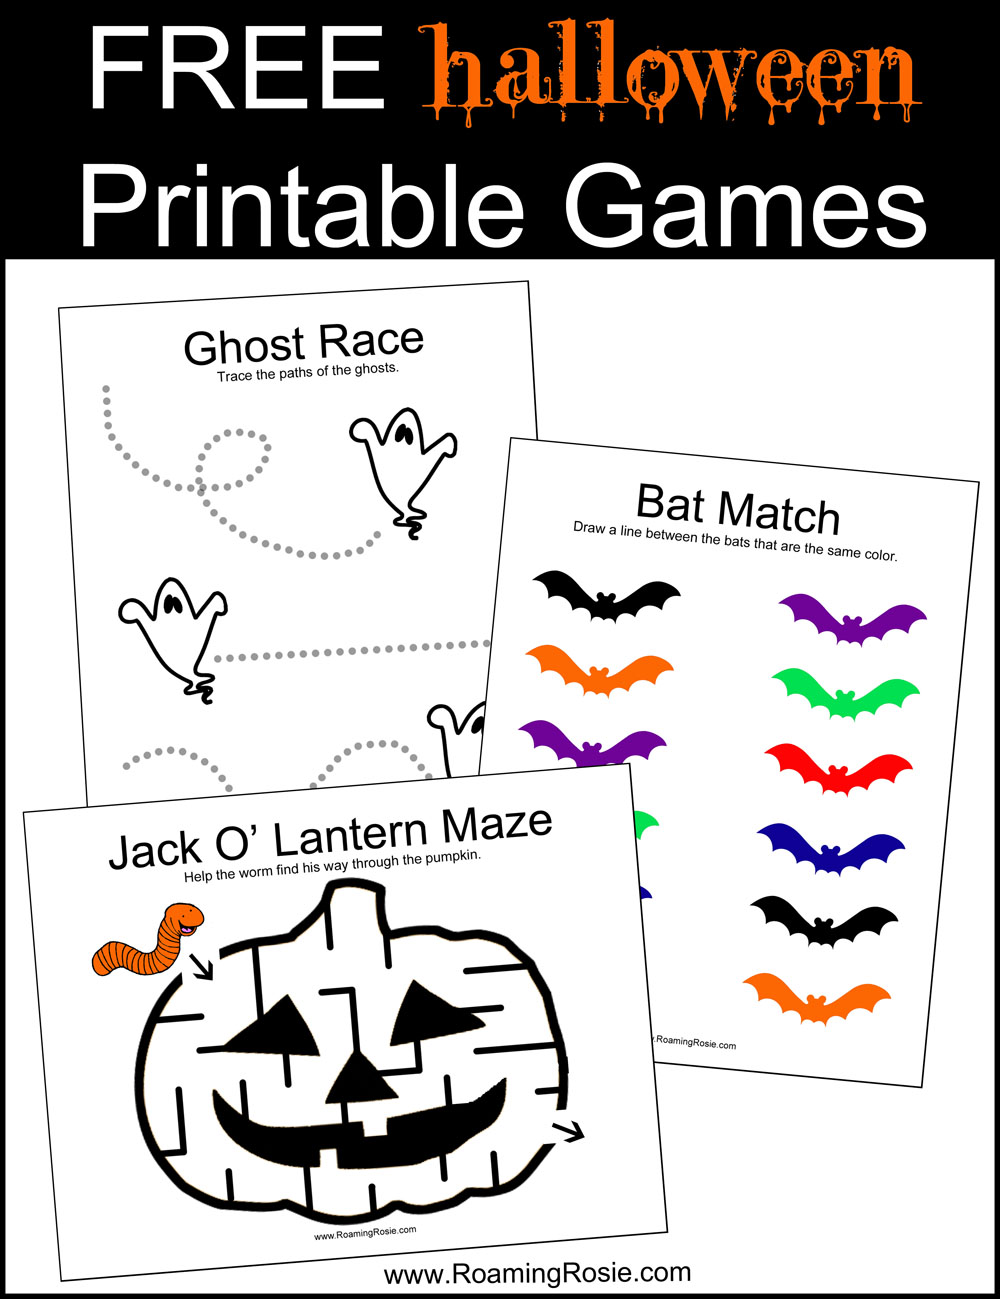 photograph about Halloween Printable Games identify Absolutely free Halloween Printable Game titles Roaming Rosie